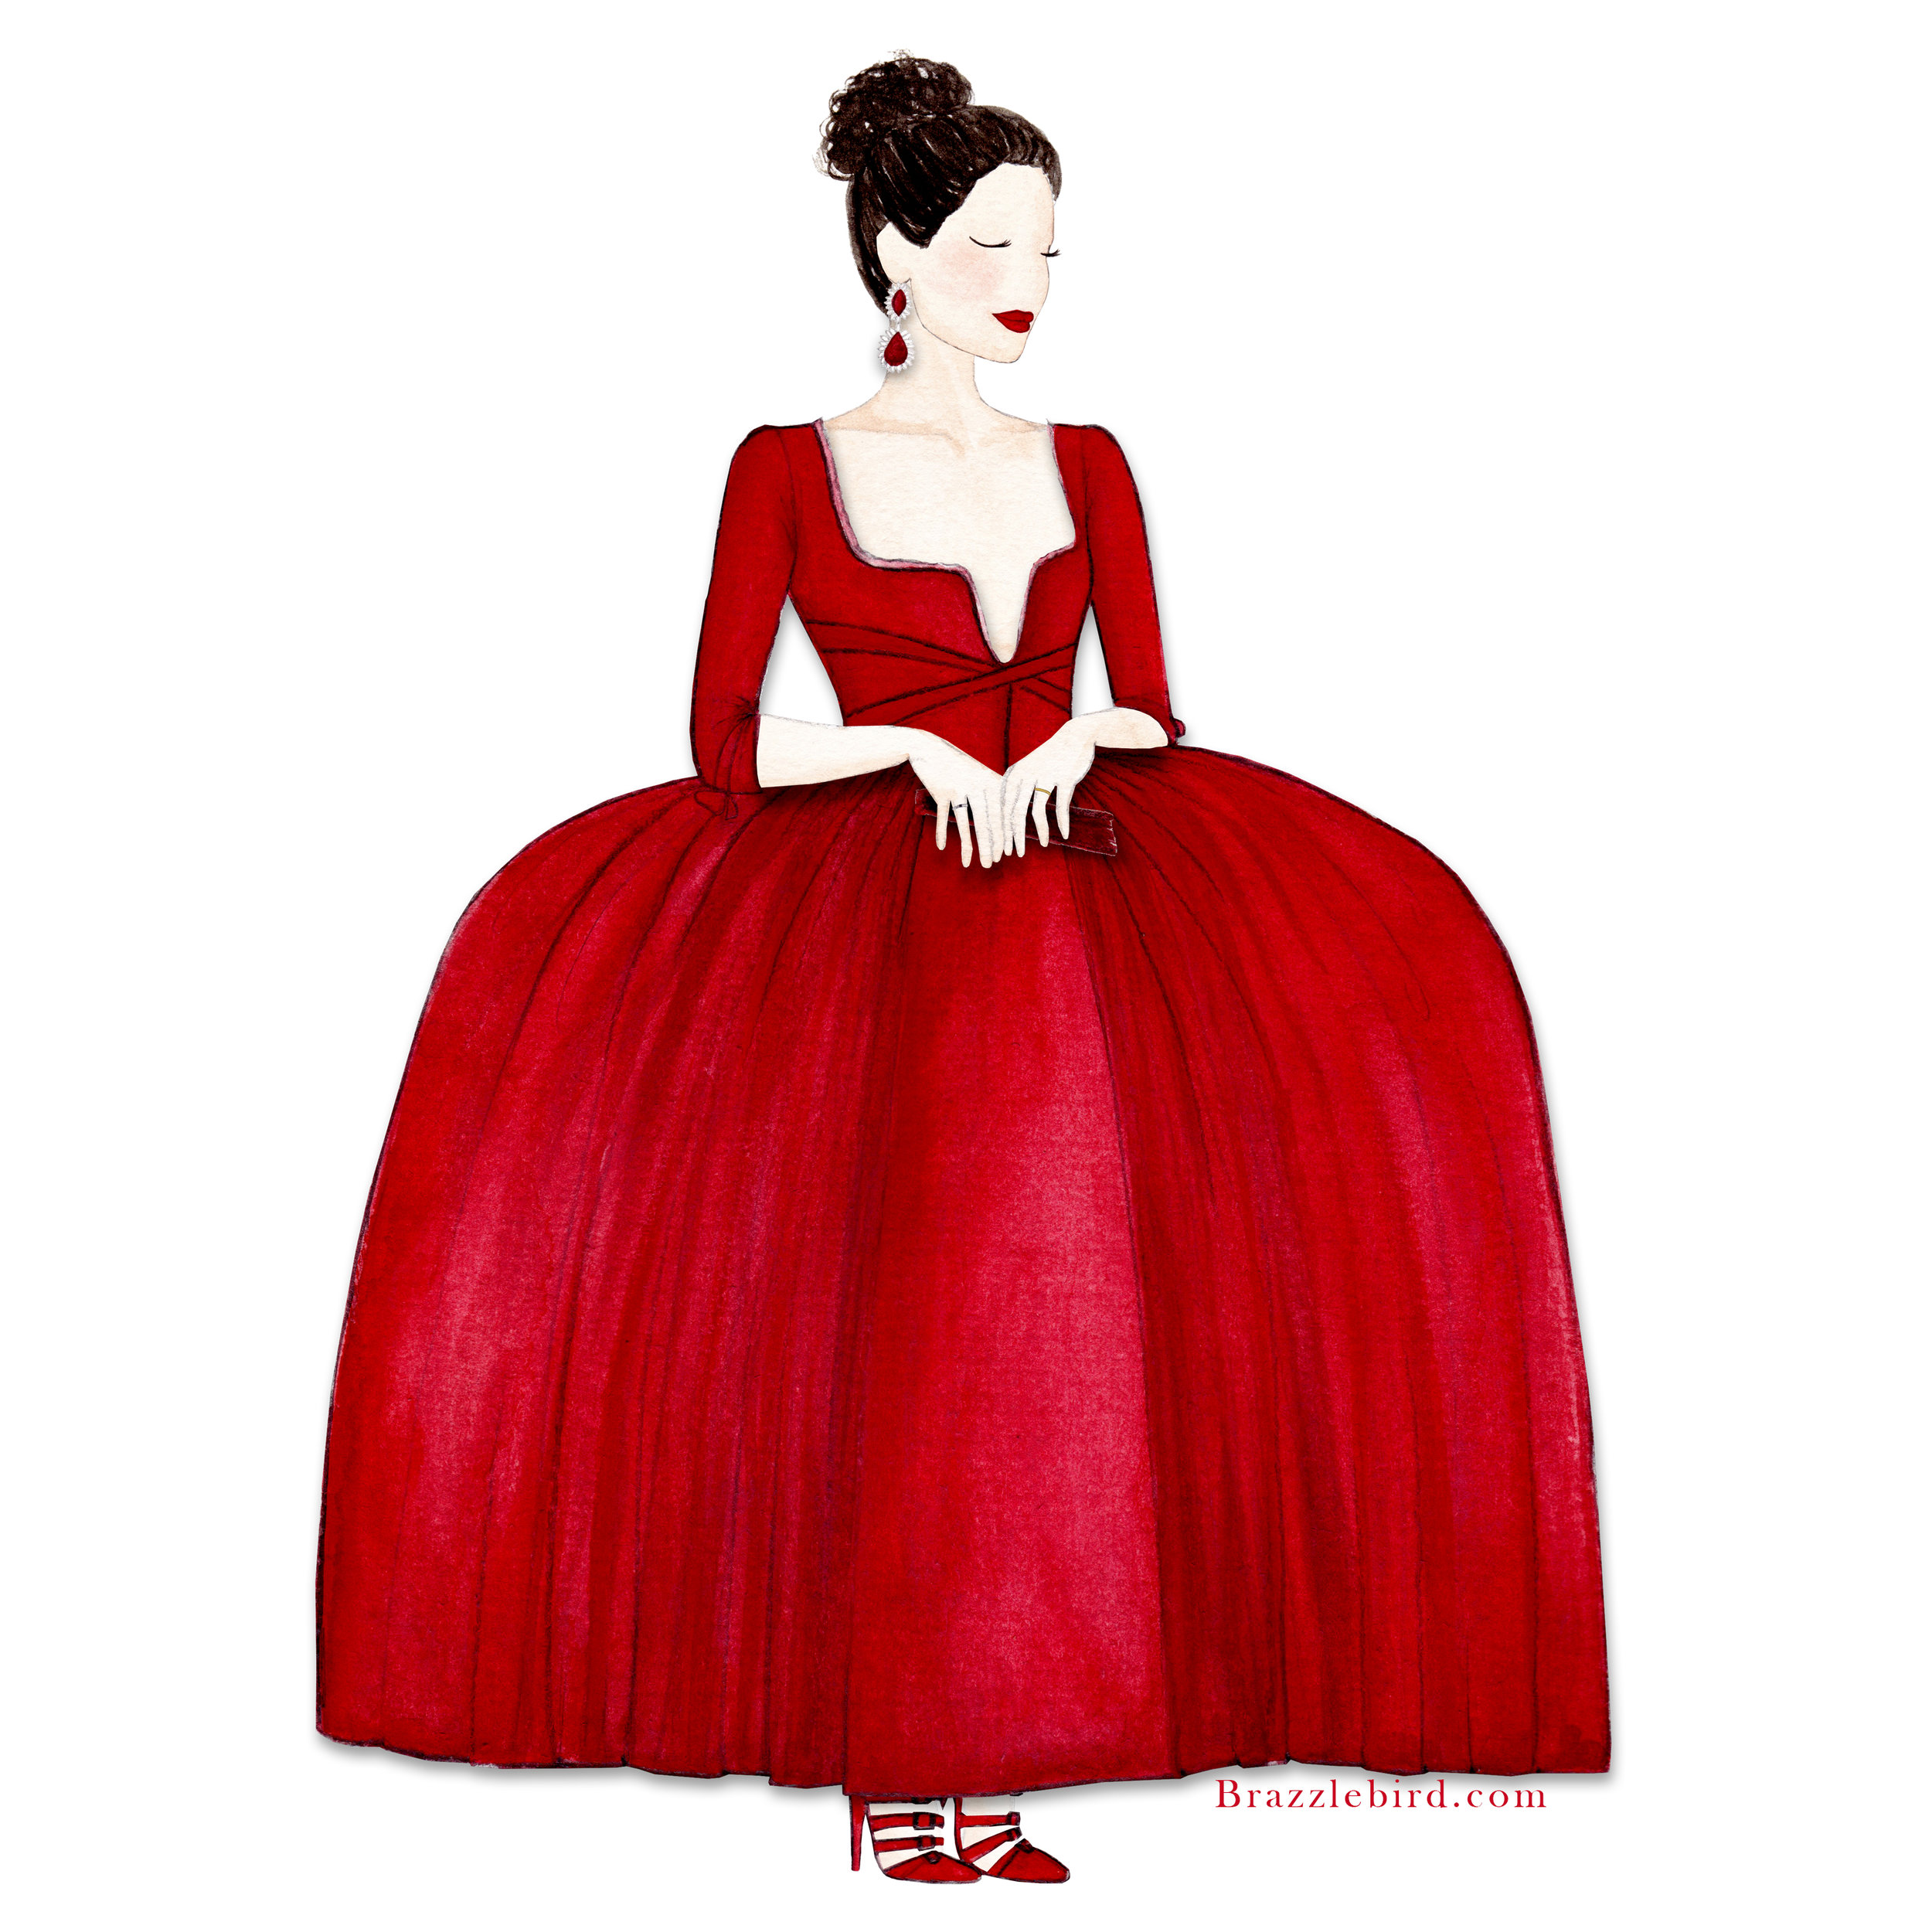 Brazzlebird - Claire Fraser Red Dress Outlander Watercolor Painting